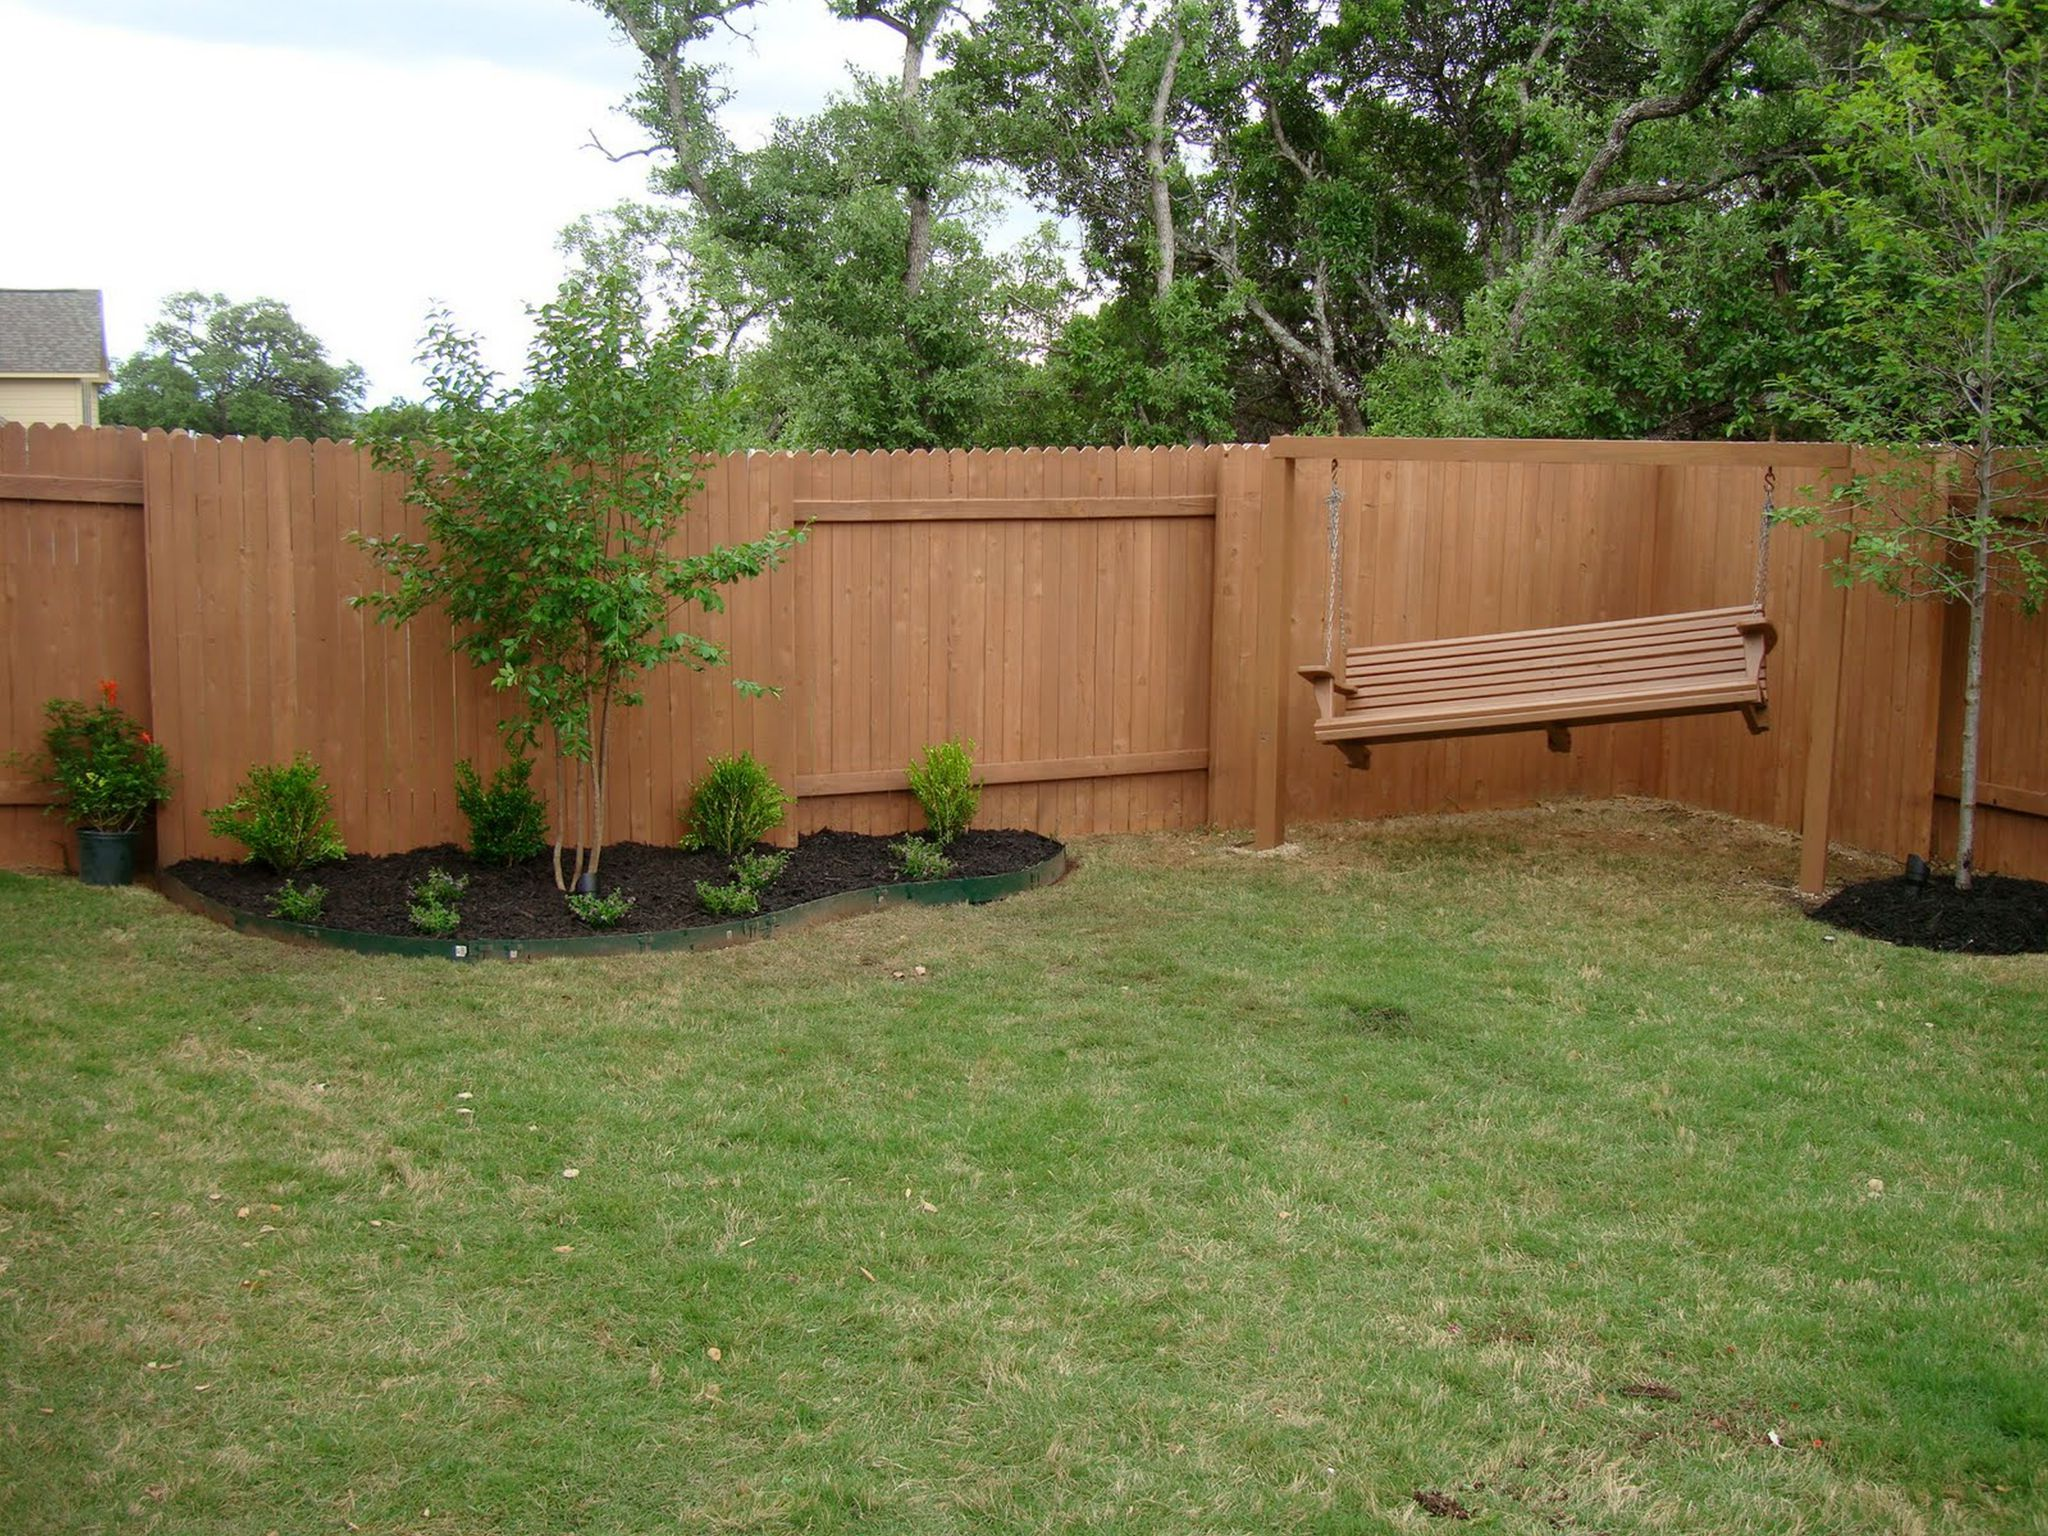 Some Helpful Cheap Backyard Fence Ideas Using the Recycle ... on Wooded Backyard Ideas id=17846